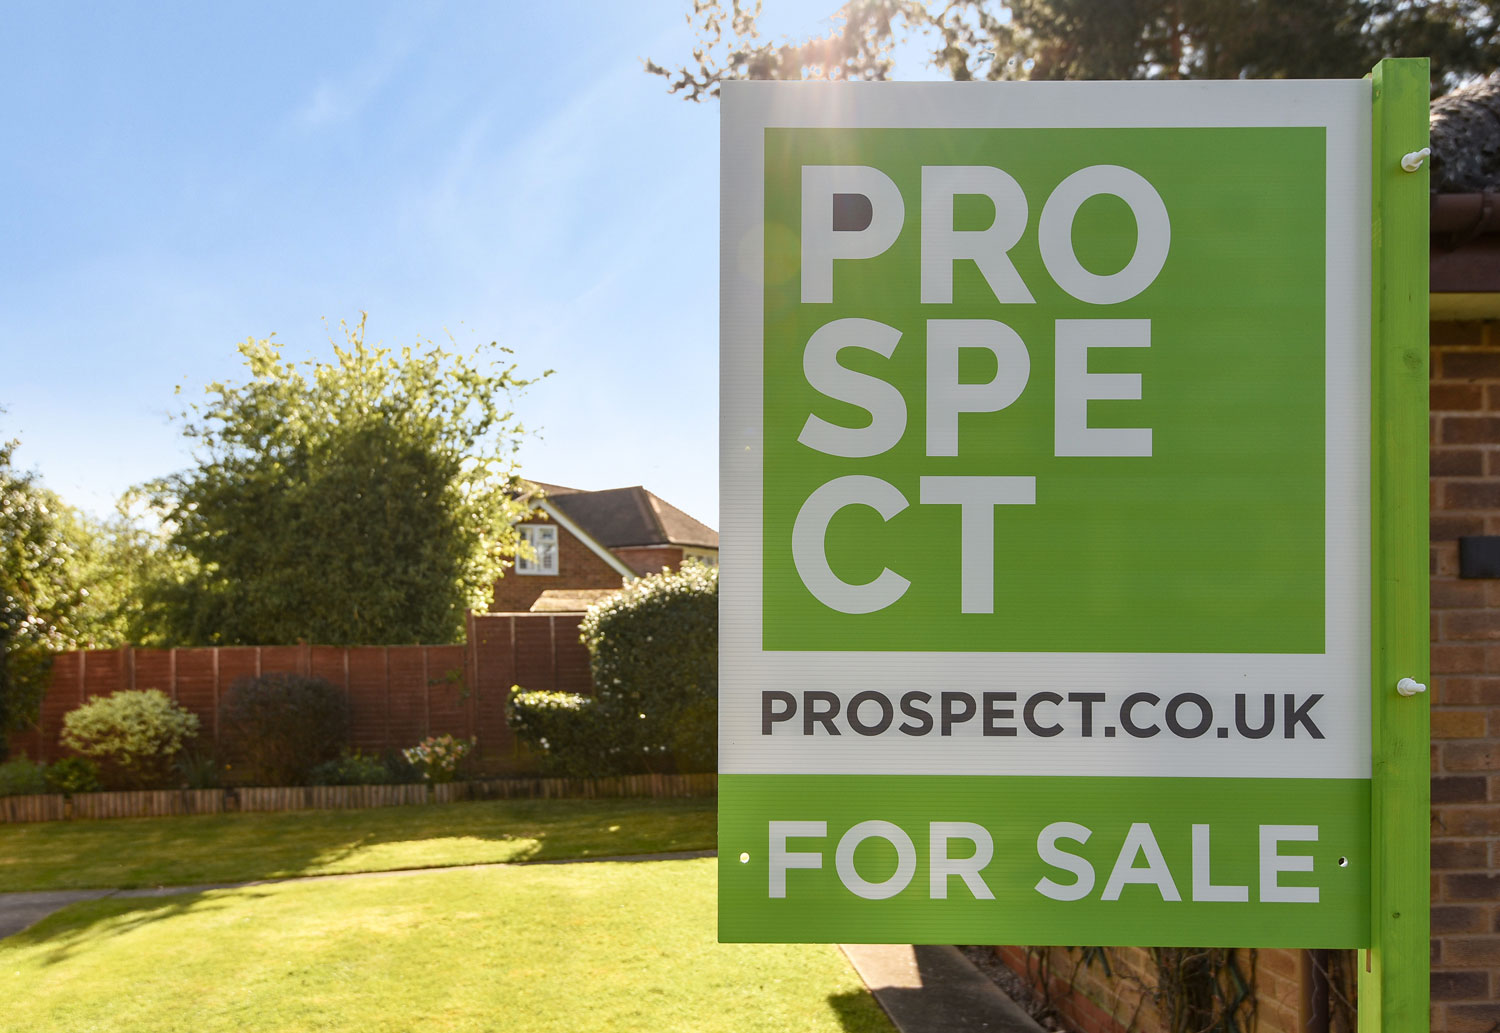 Prospect rebranded for sale board